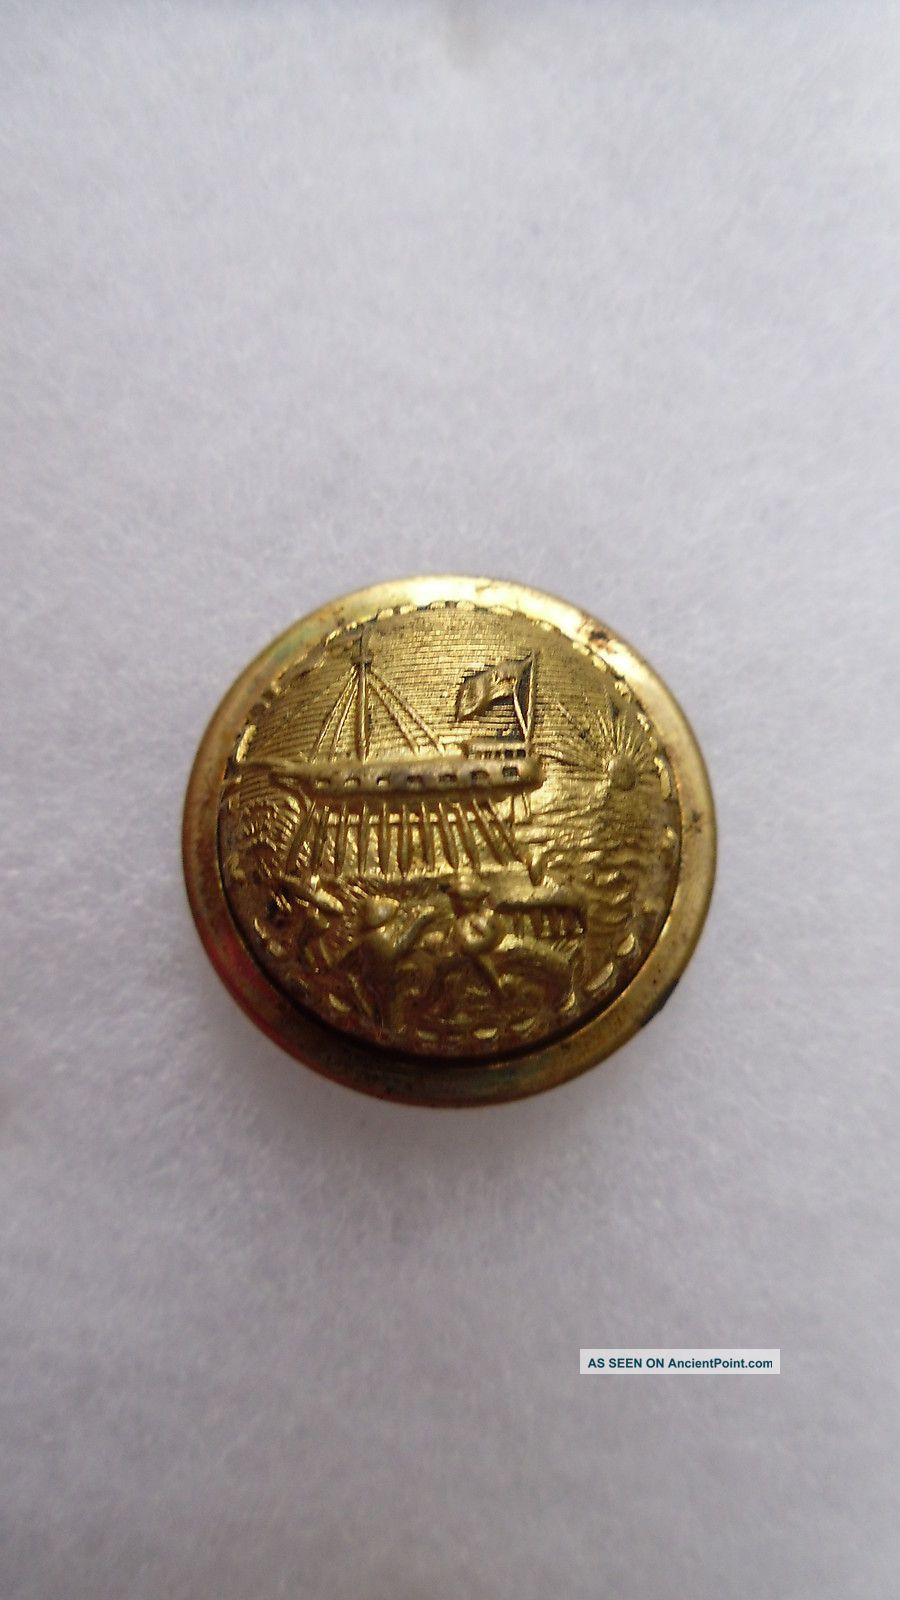 Antique New Hampshire State Seal Coat Button Scovill Mfg Co Waterbury 23 Mm Buttons photo